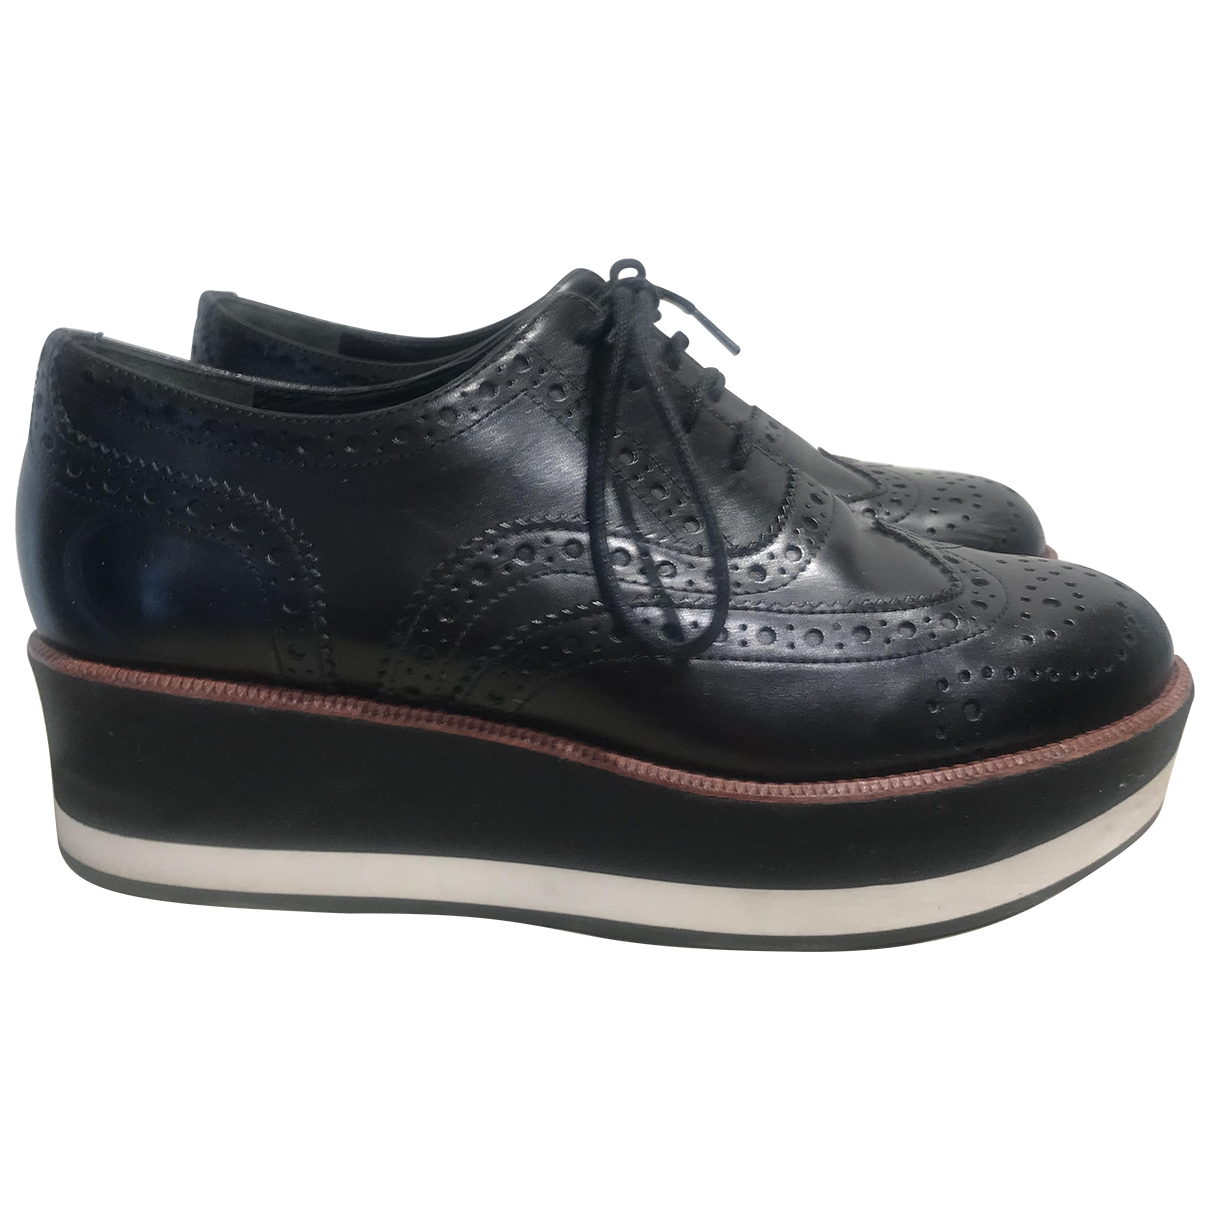 Paloma Barcelo \N Black Leather Flats for Women 36 IT